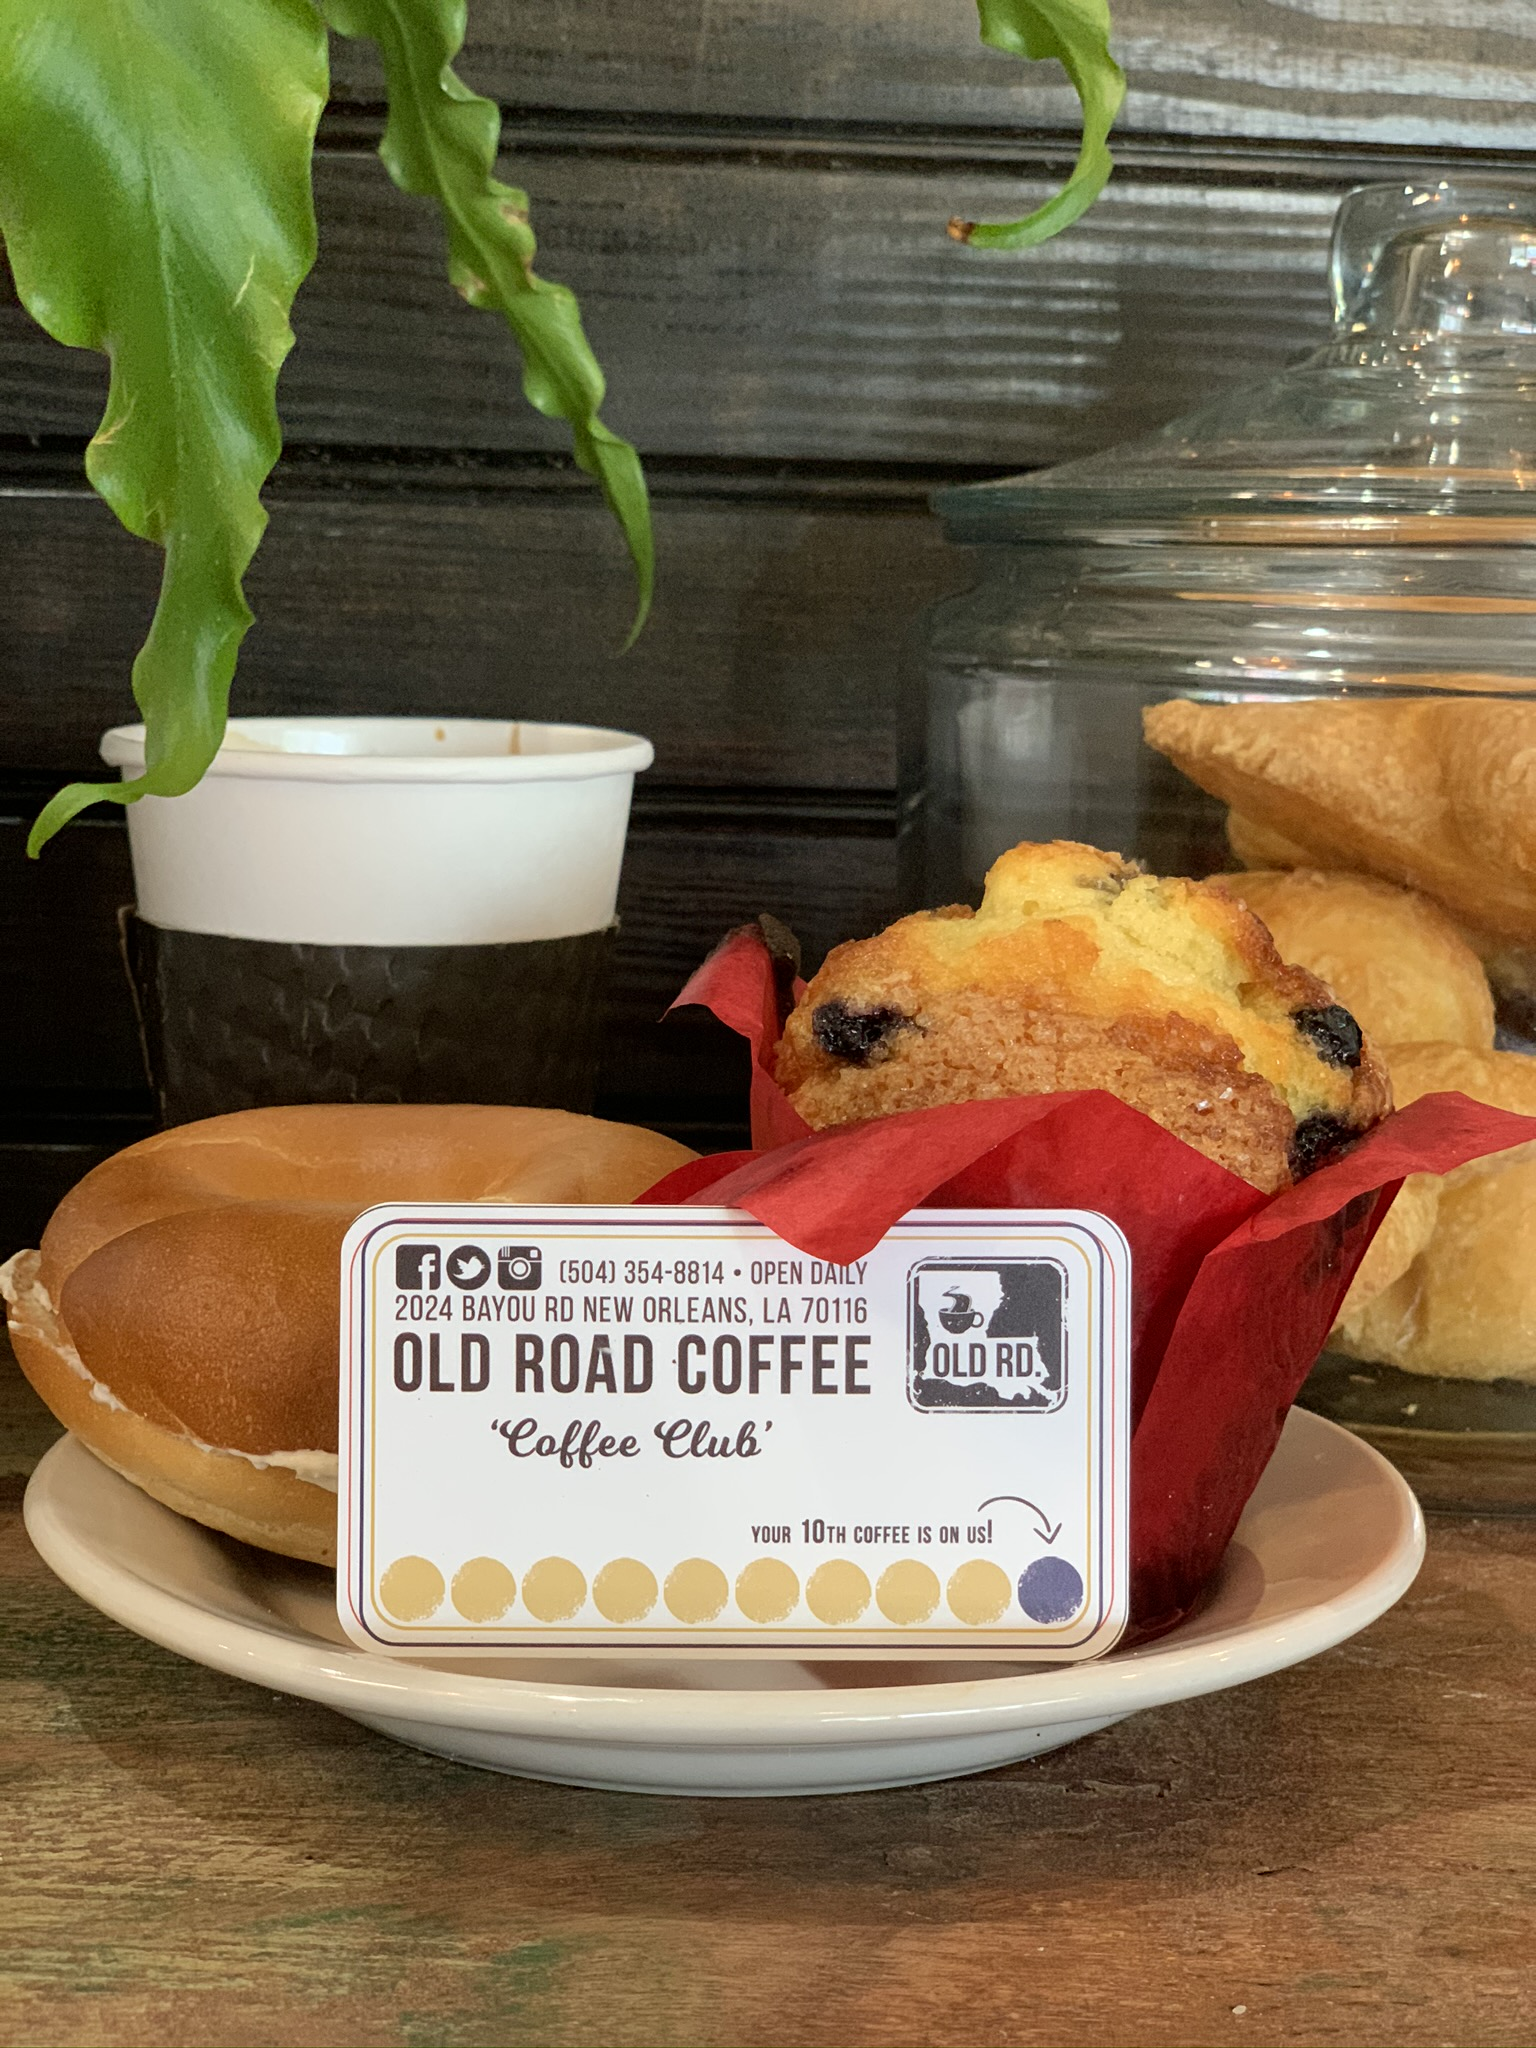 Loyalty card and pastries at Old Road Coffee Shop